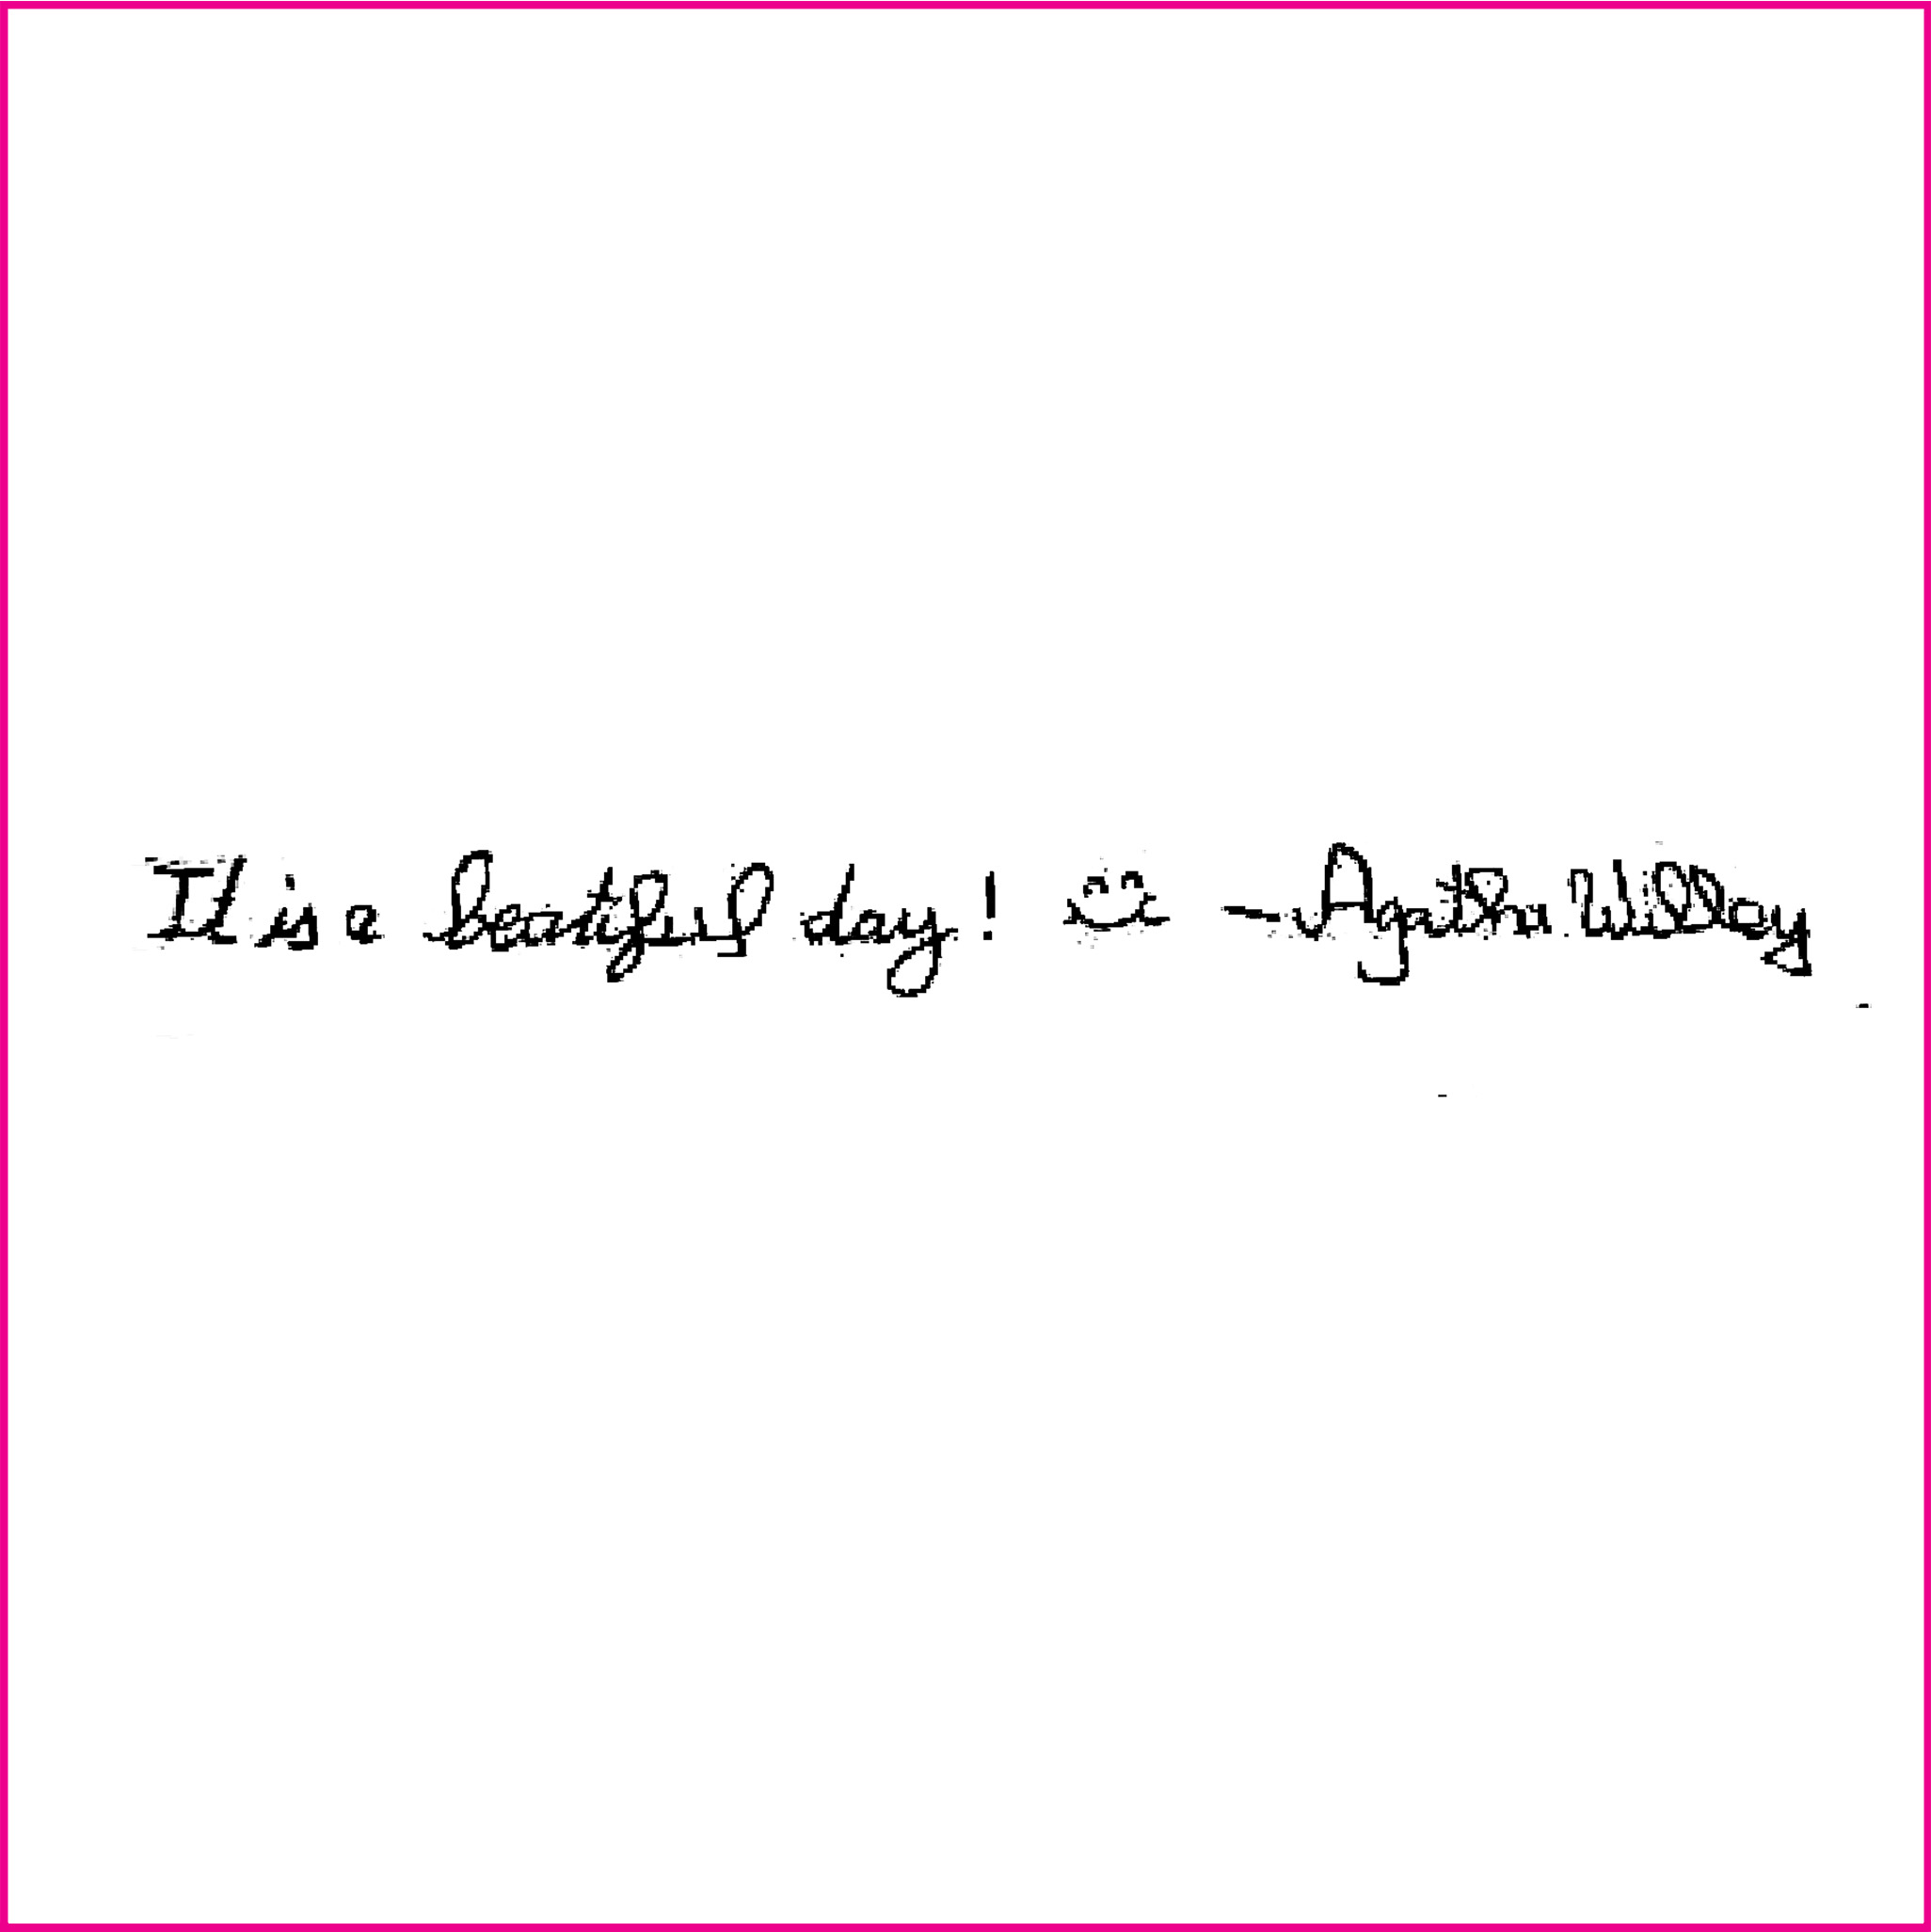 It is a beautiful day! - Agatha Willey